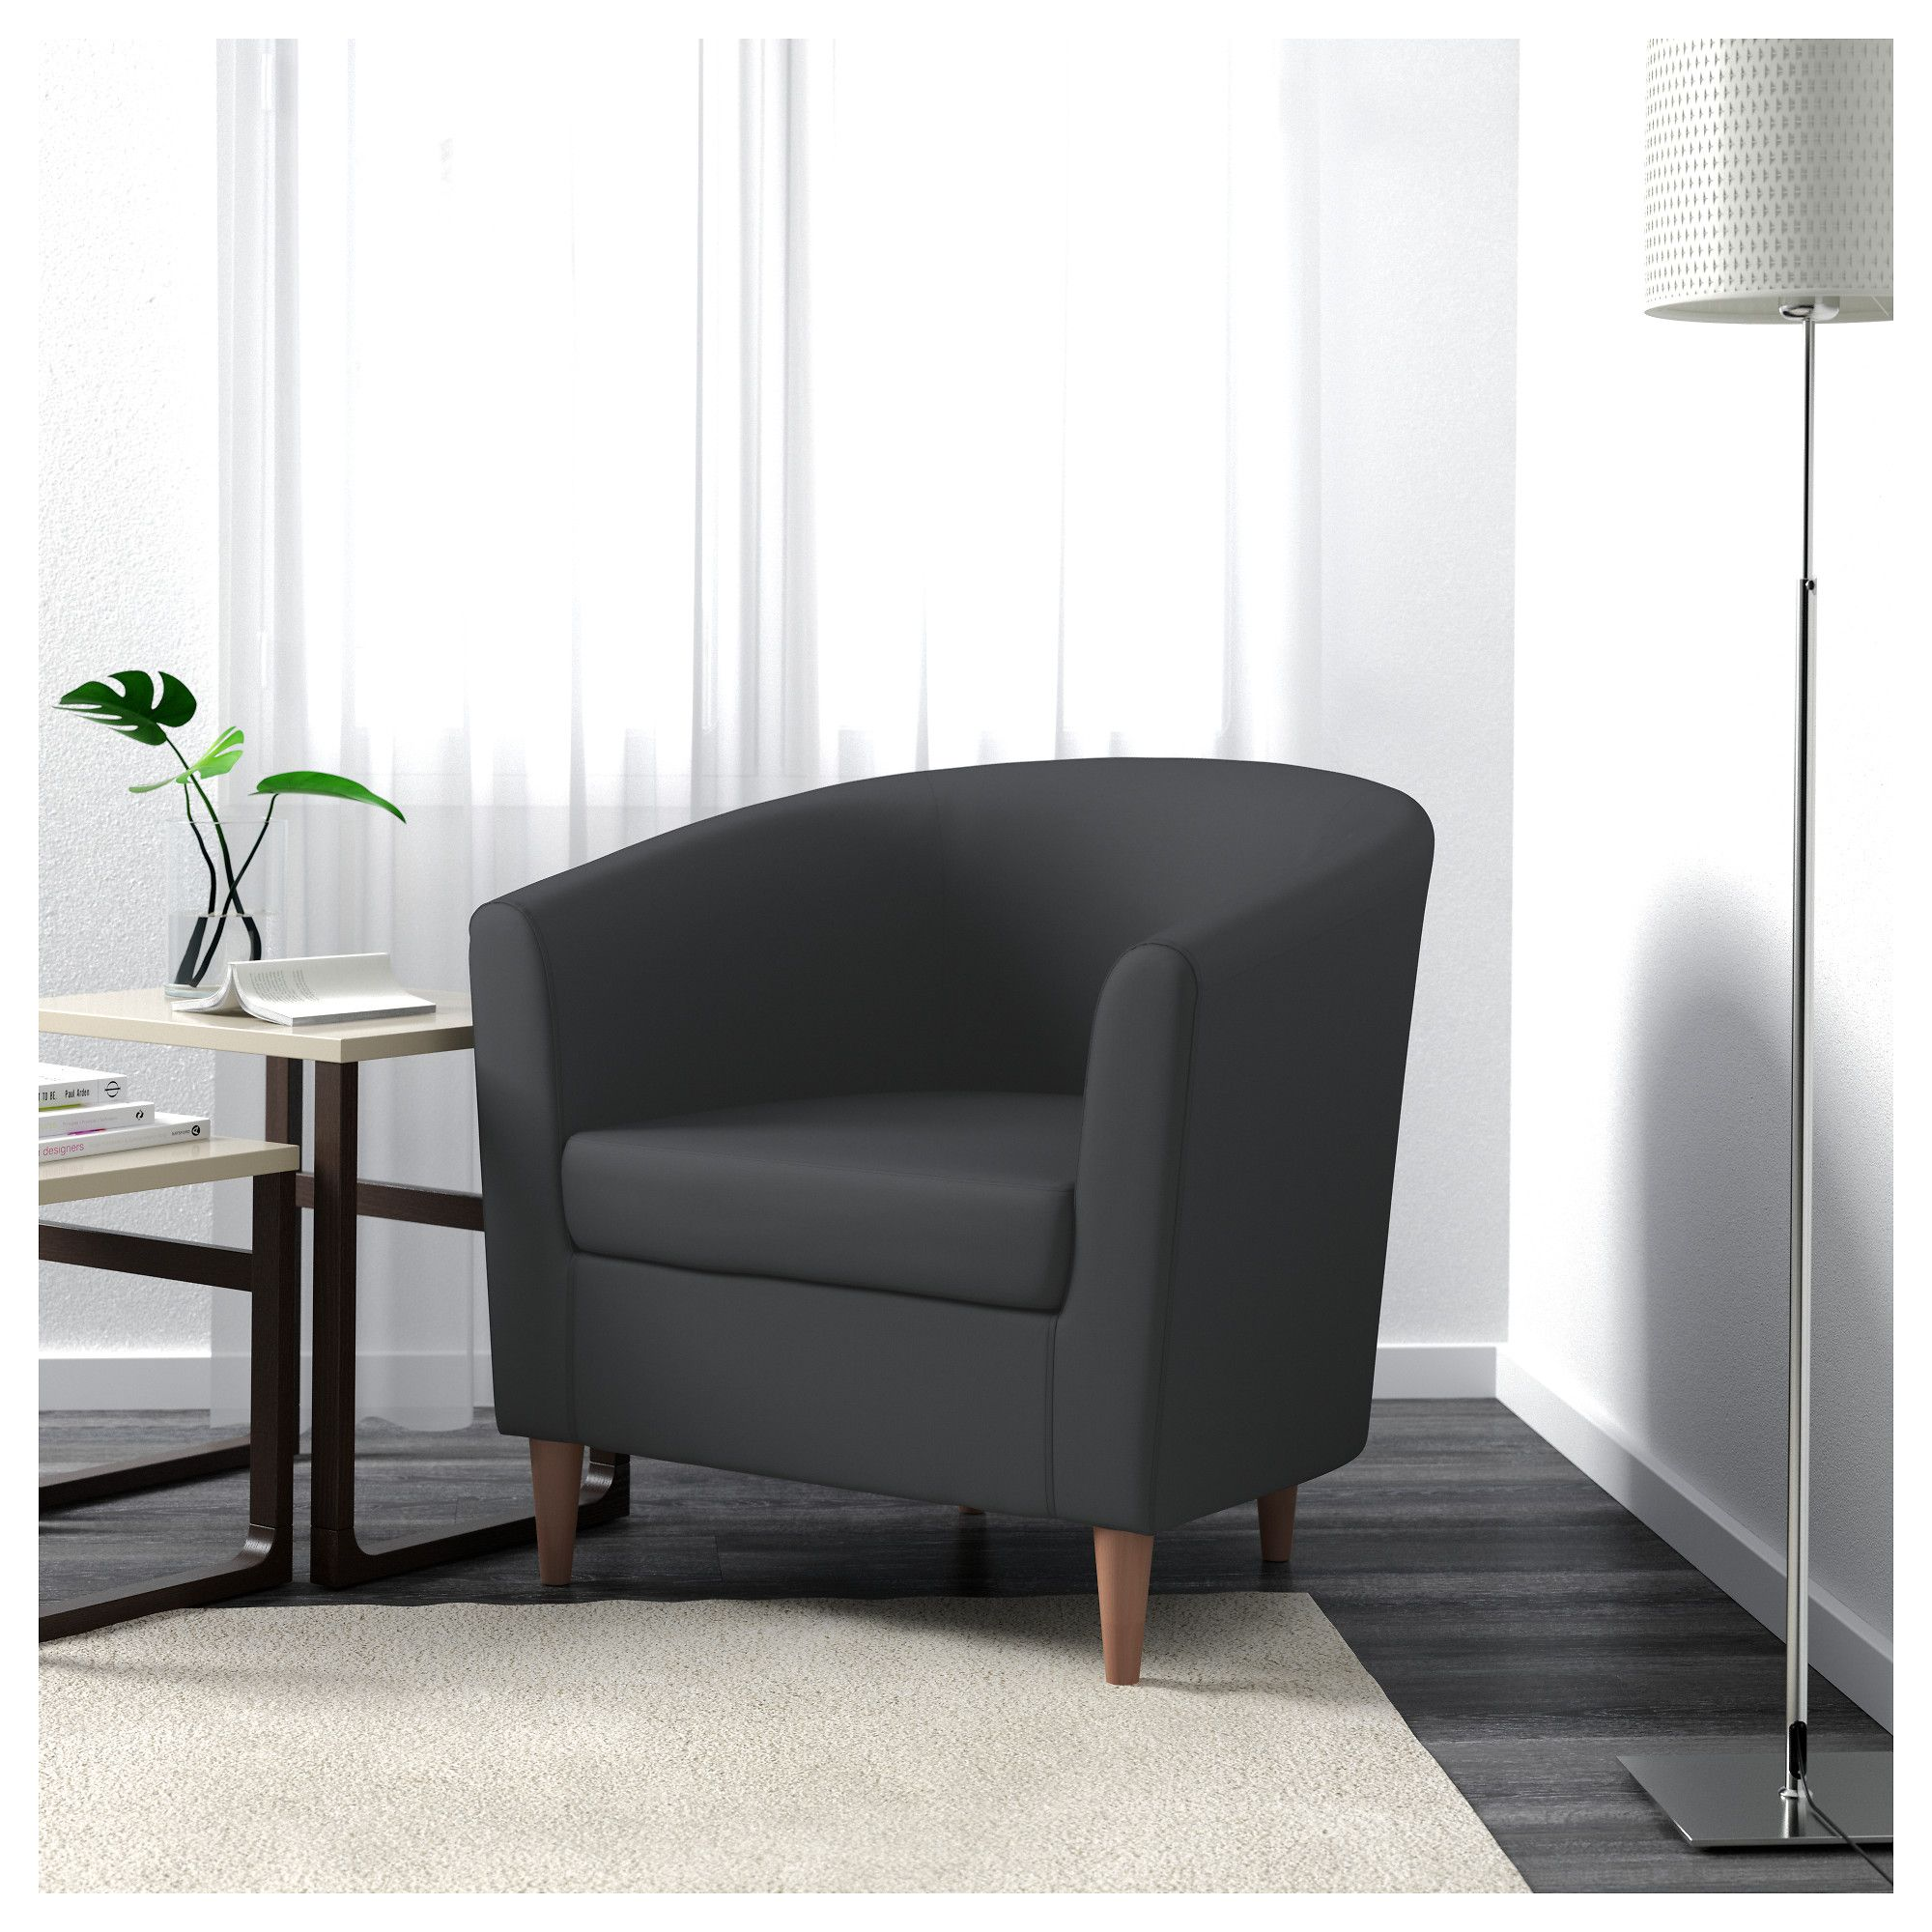 Tullsta Sessel Ikea Tullsta Armchair Slim Lines Easy To Place Living Room